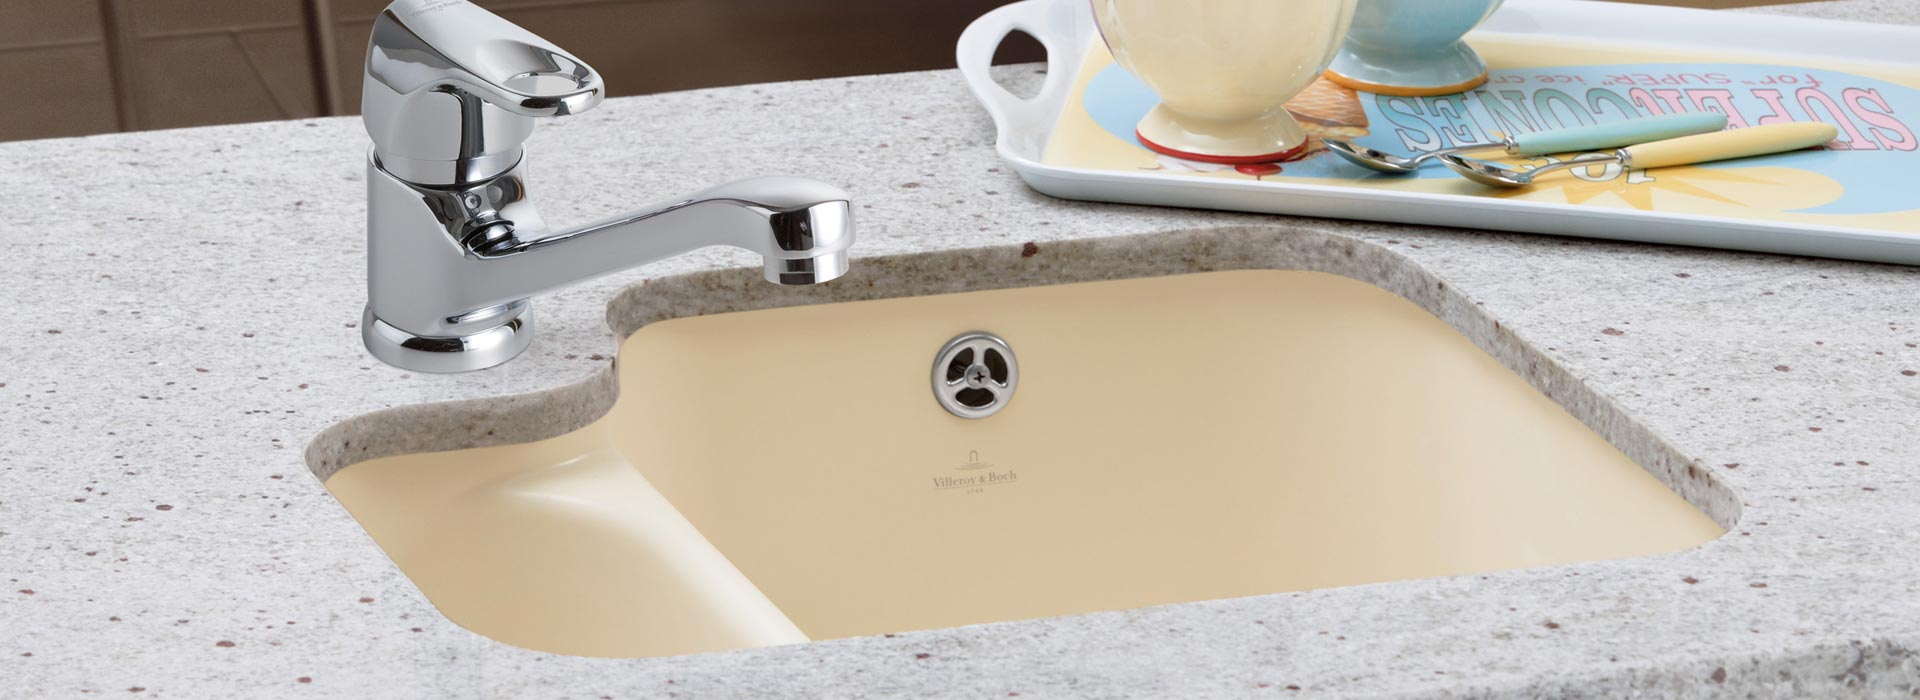 Premium quality undercounter sink from villeroy boch undercounter sink cisterna 60b amy kitchen tap workwithnaturefo